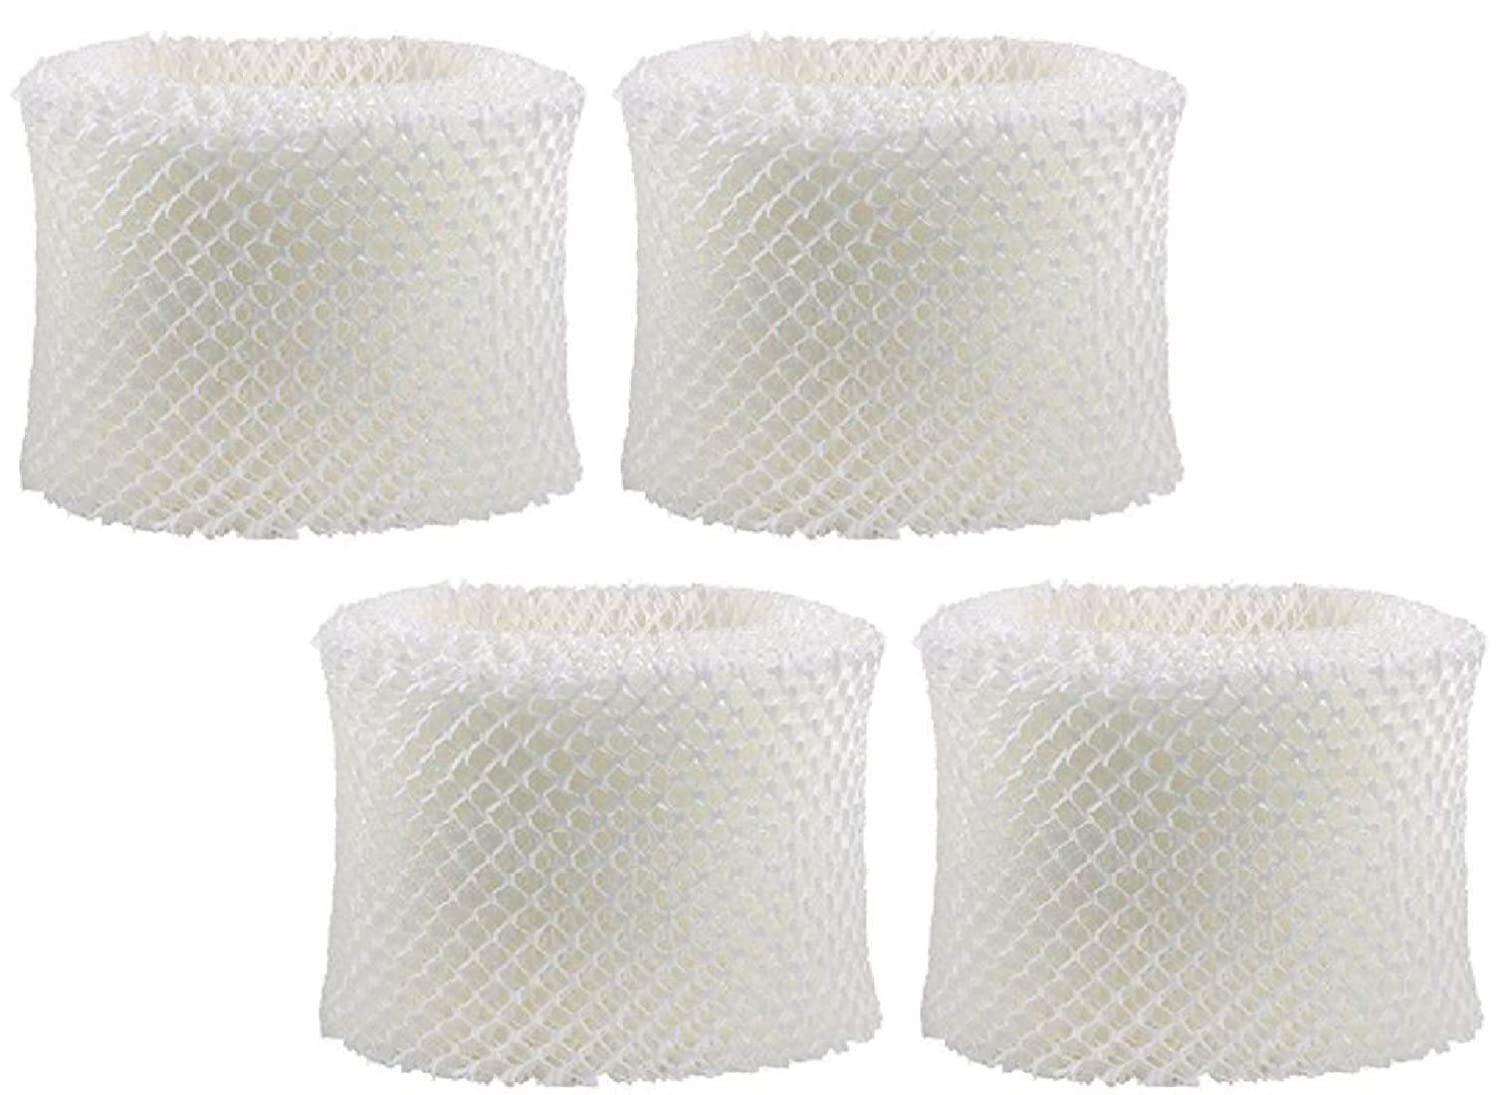 Nispira 4 Packs Humidifier Wick Filter Replacement Compatible Holmes HWF75 HWF75CS HWF75PDQ-U Filter D Fits White Westinghouse, Sunbeam